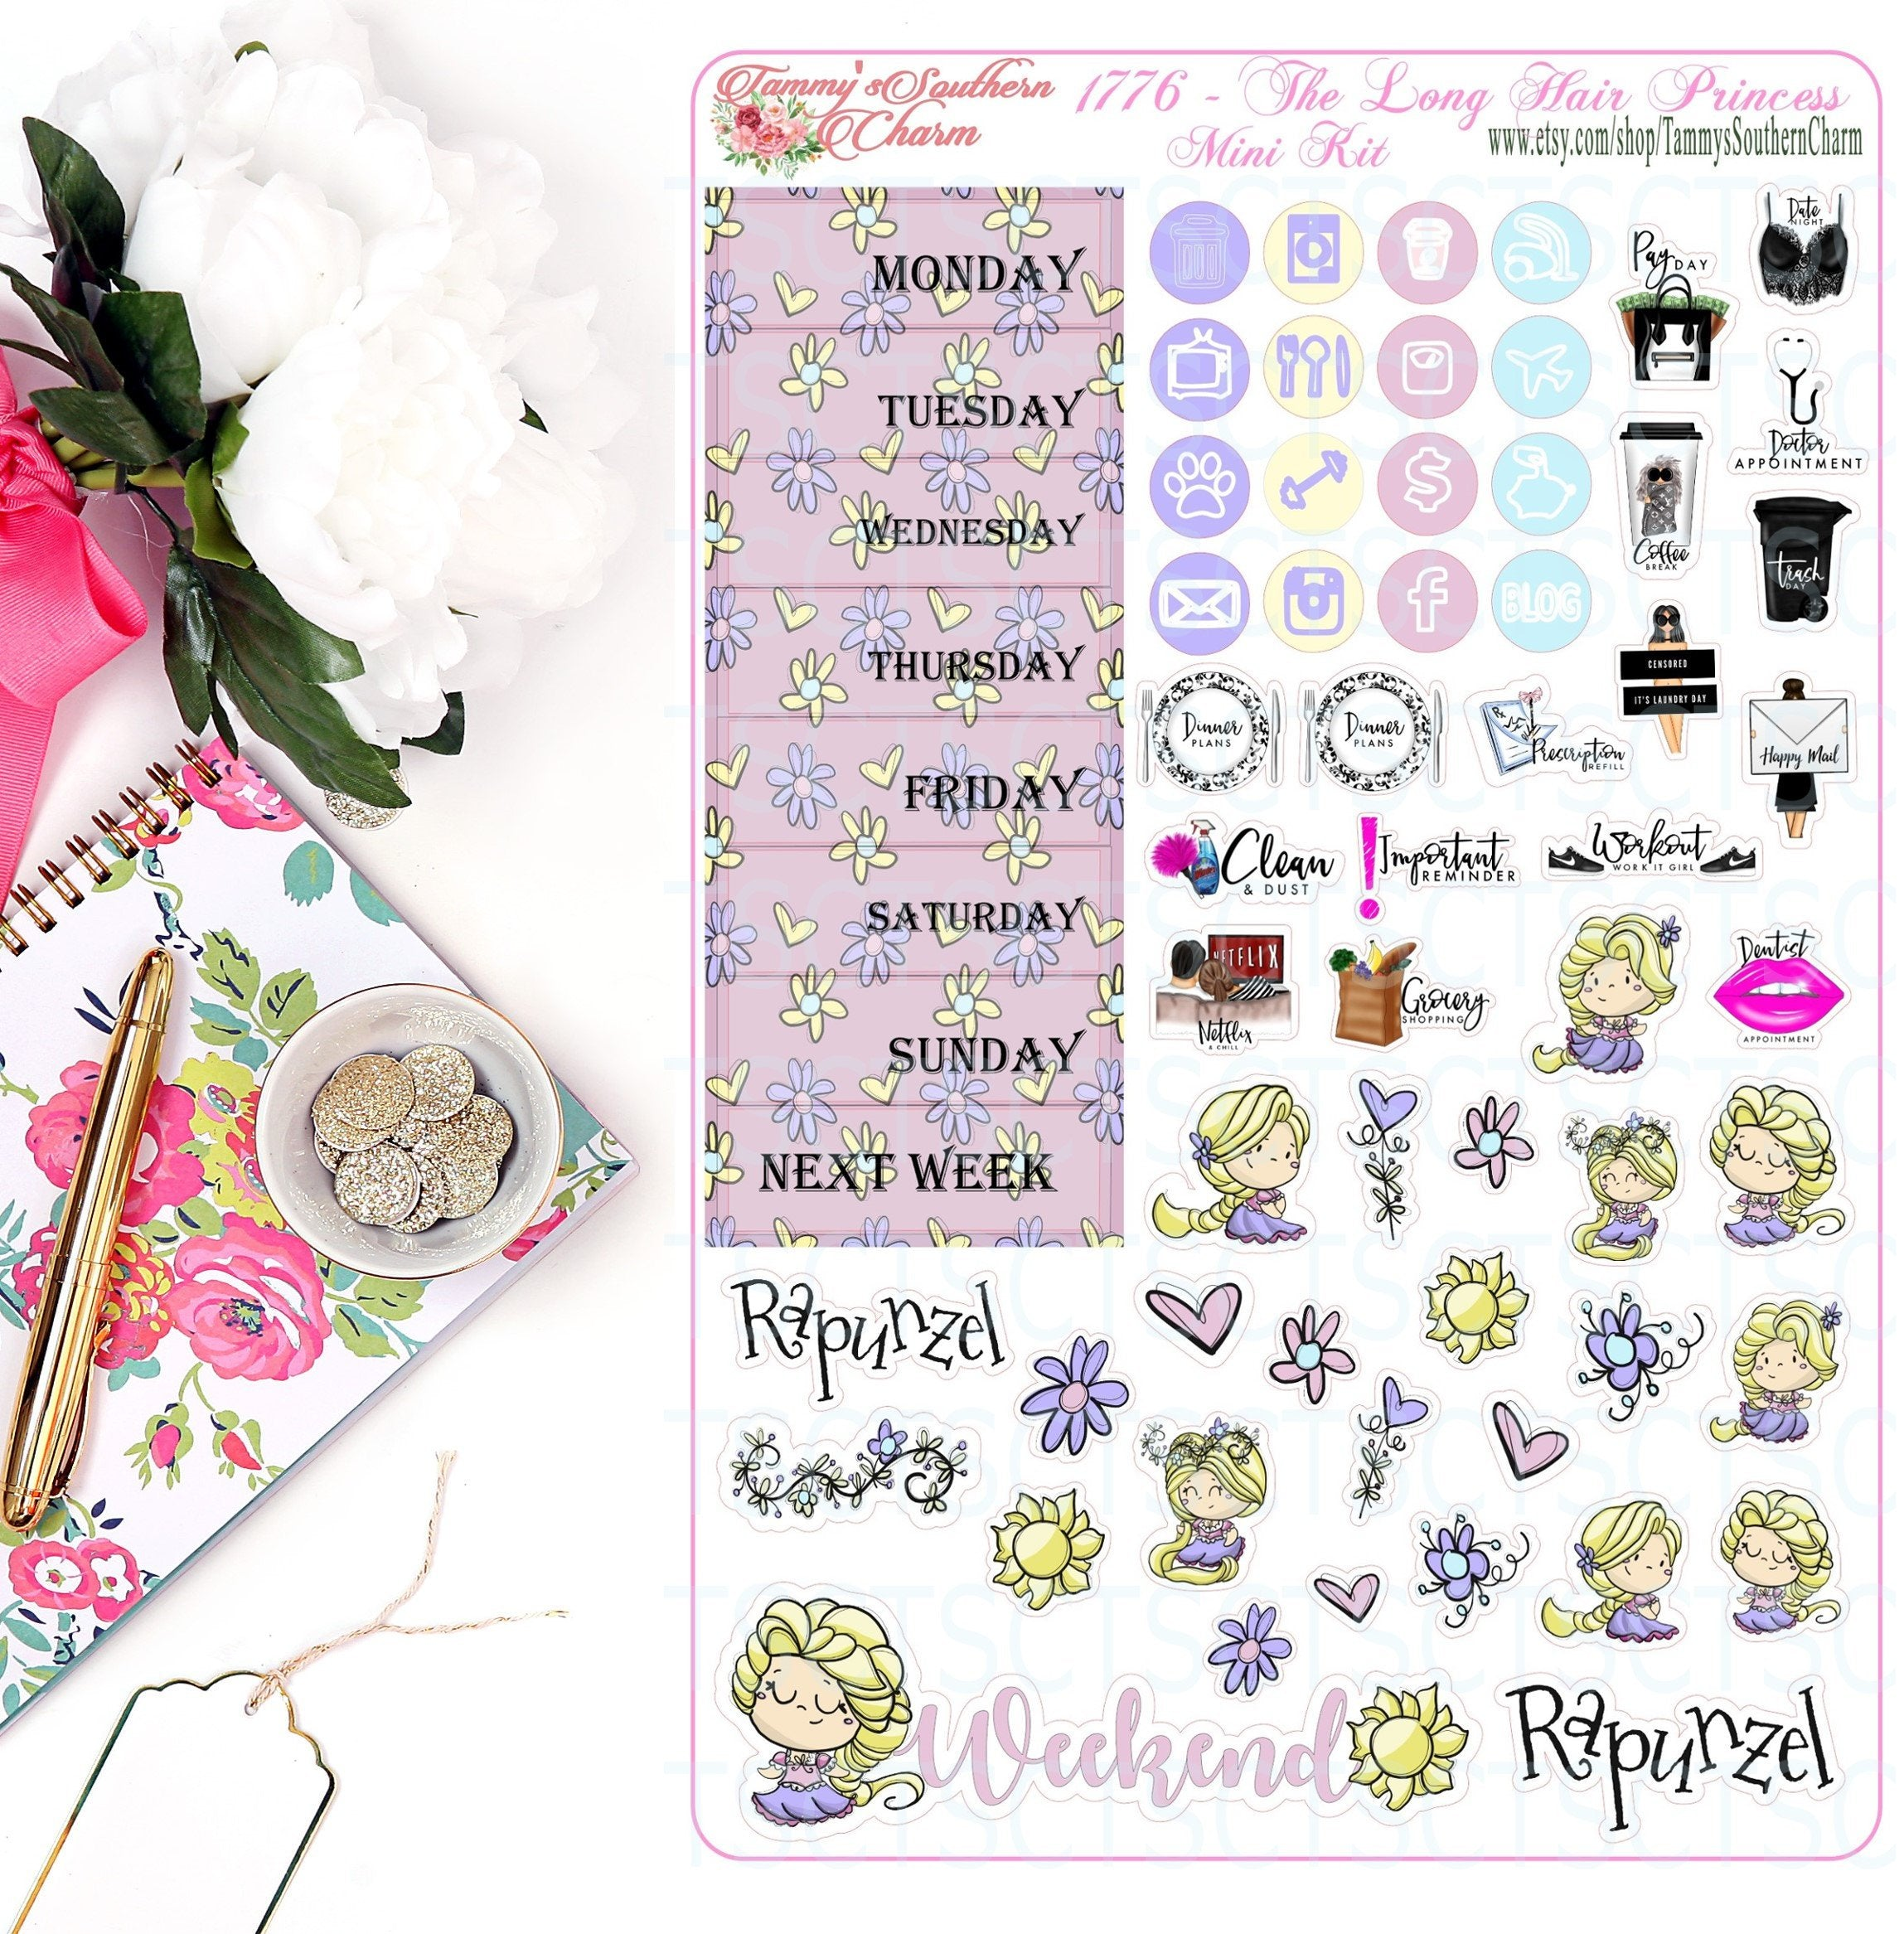 1776 LONG HAIR PRINCESS - Stickers, Planner Stickers, Traveler's nb stickers, Planner Layout, Princess Stickers, Princess Layouts